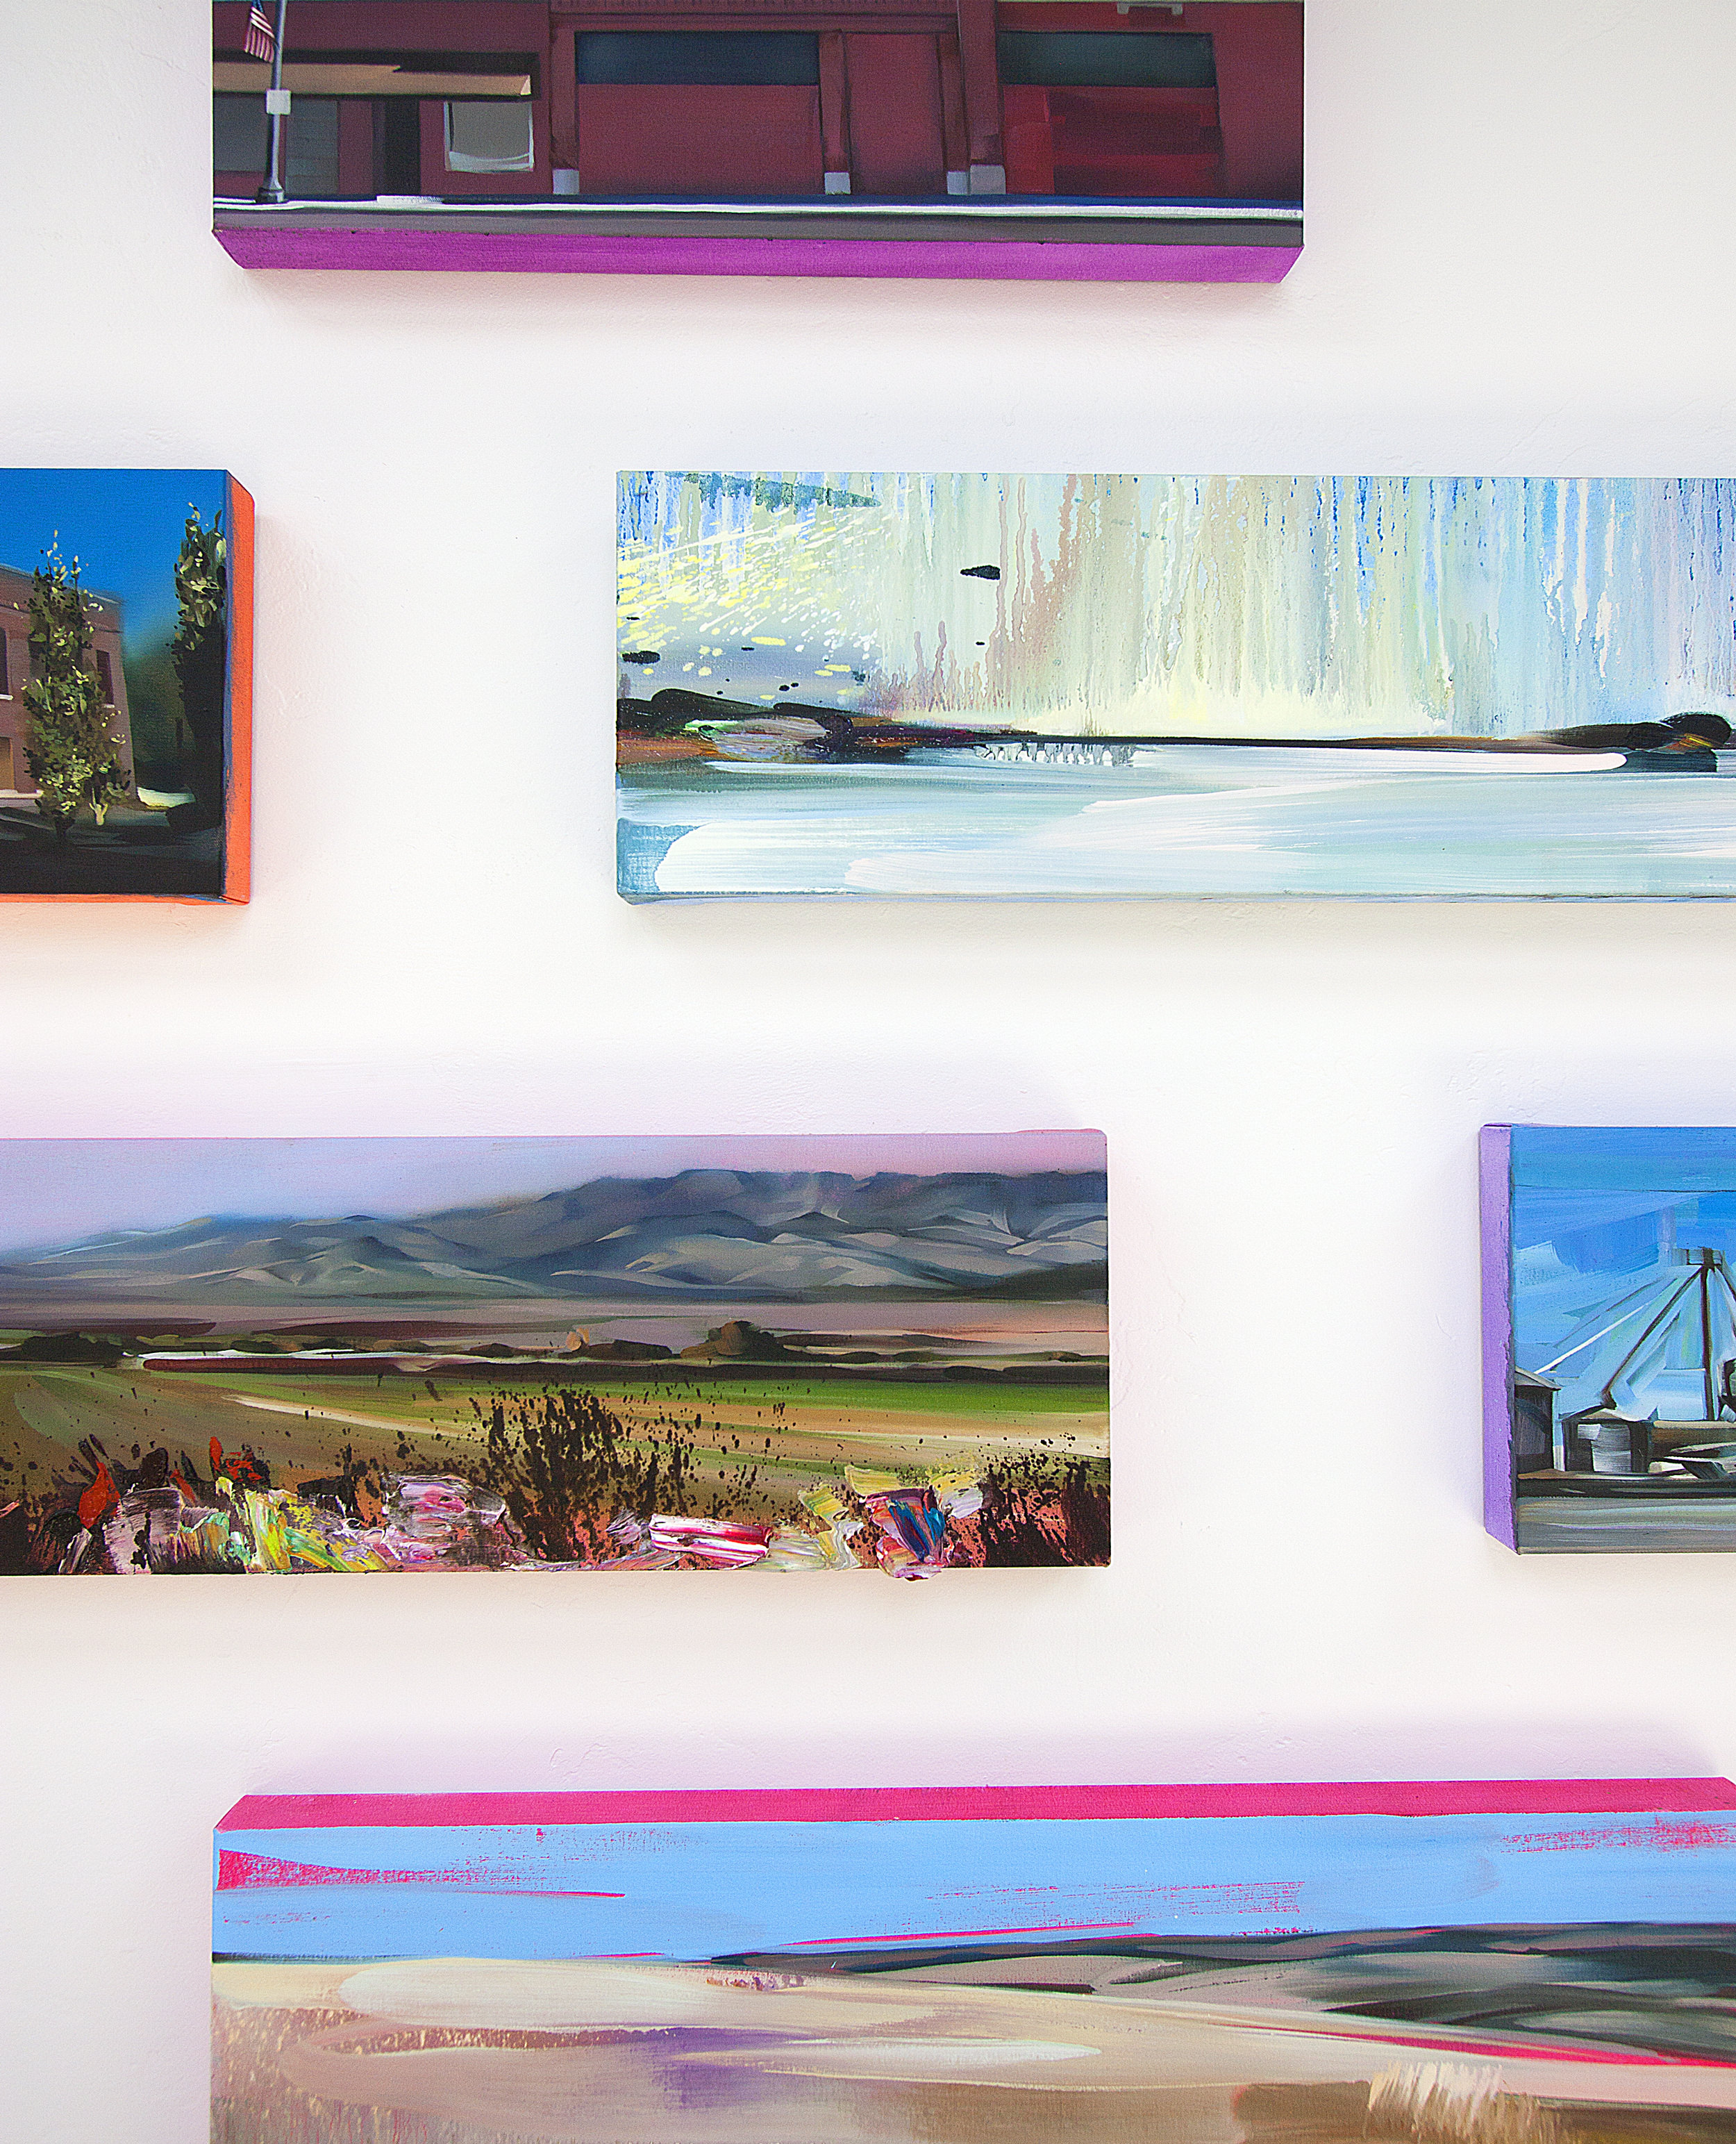 Paintings by Rebecca Campbell that show the under painting technique that inspired the Façade- notice how the color on the sides of the canvas creates a diaphanous glow.